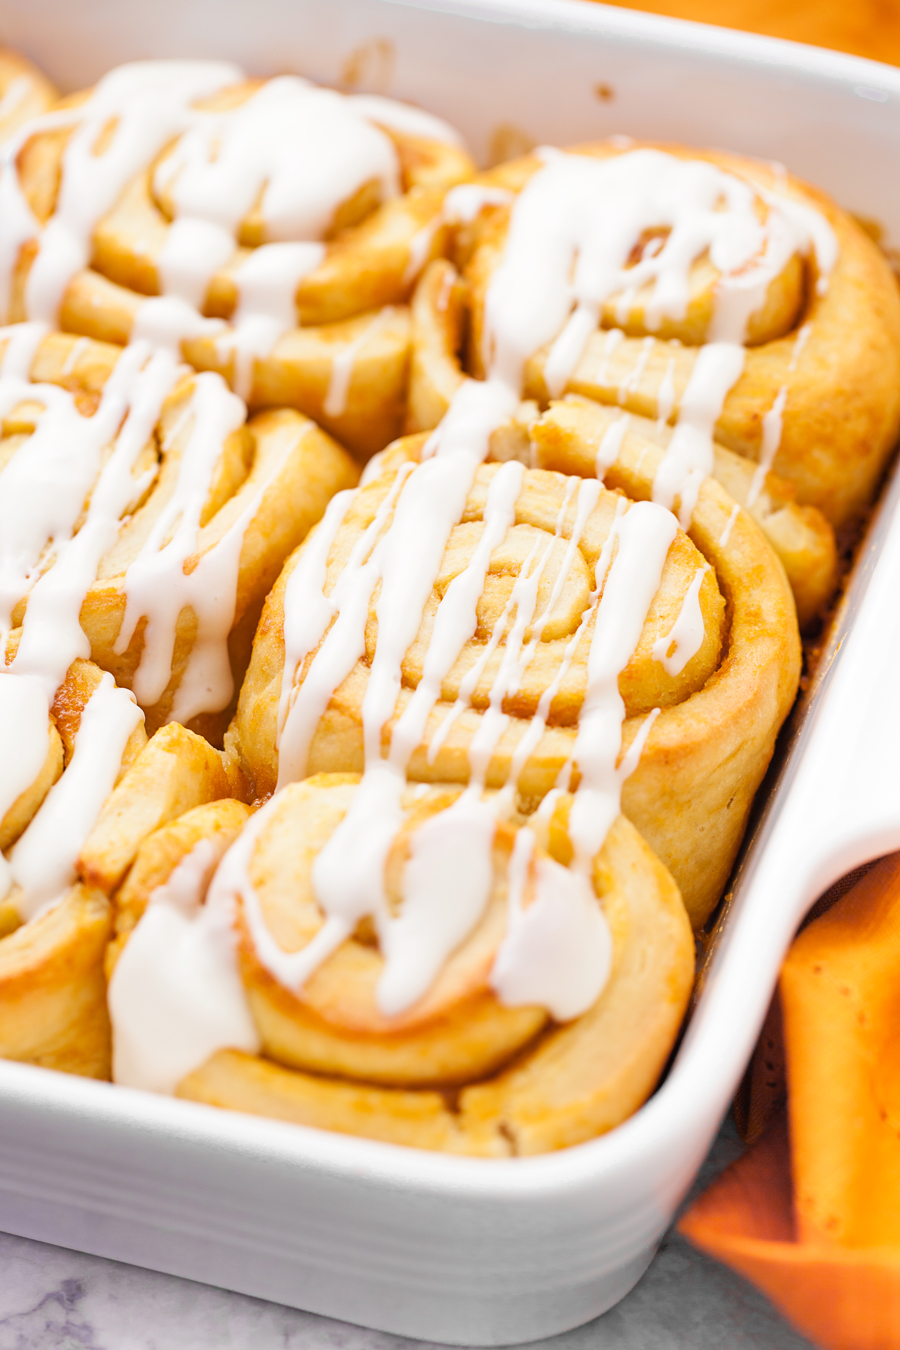 These Easy Pumpkin Cinnamon rolls are great for the fall season.  Pumpkin, cinnamon, and 60 minutes later you have a delicious treat!